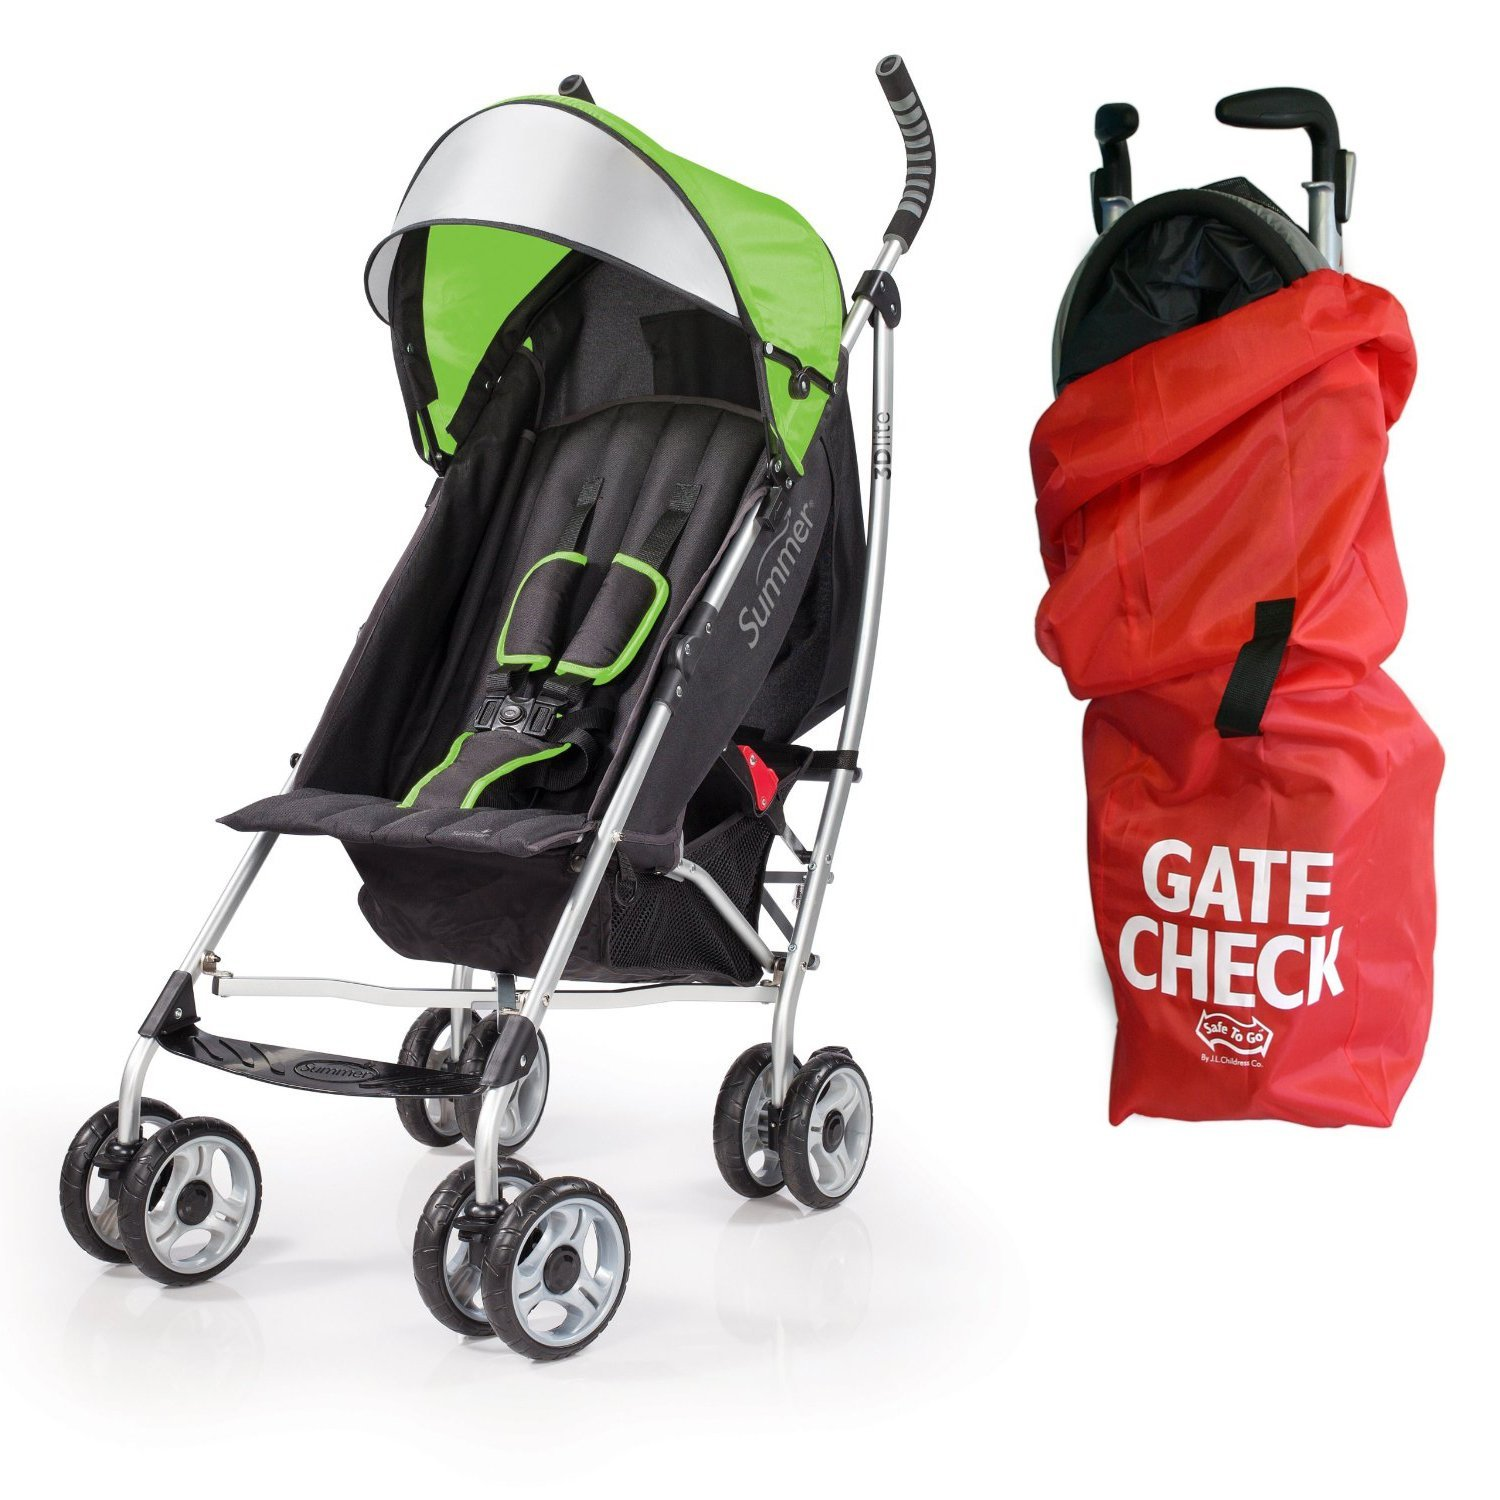 Summer Infant 3D Lite Convenience Stroller with Airport Gate Check Travel Bag, Green